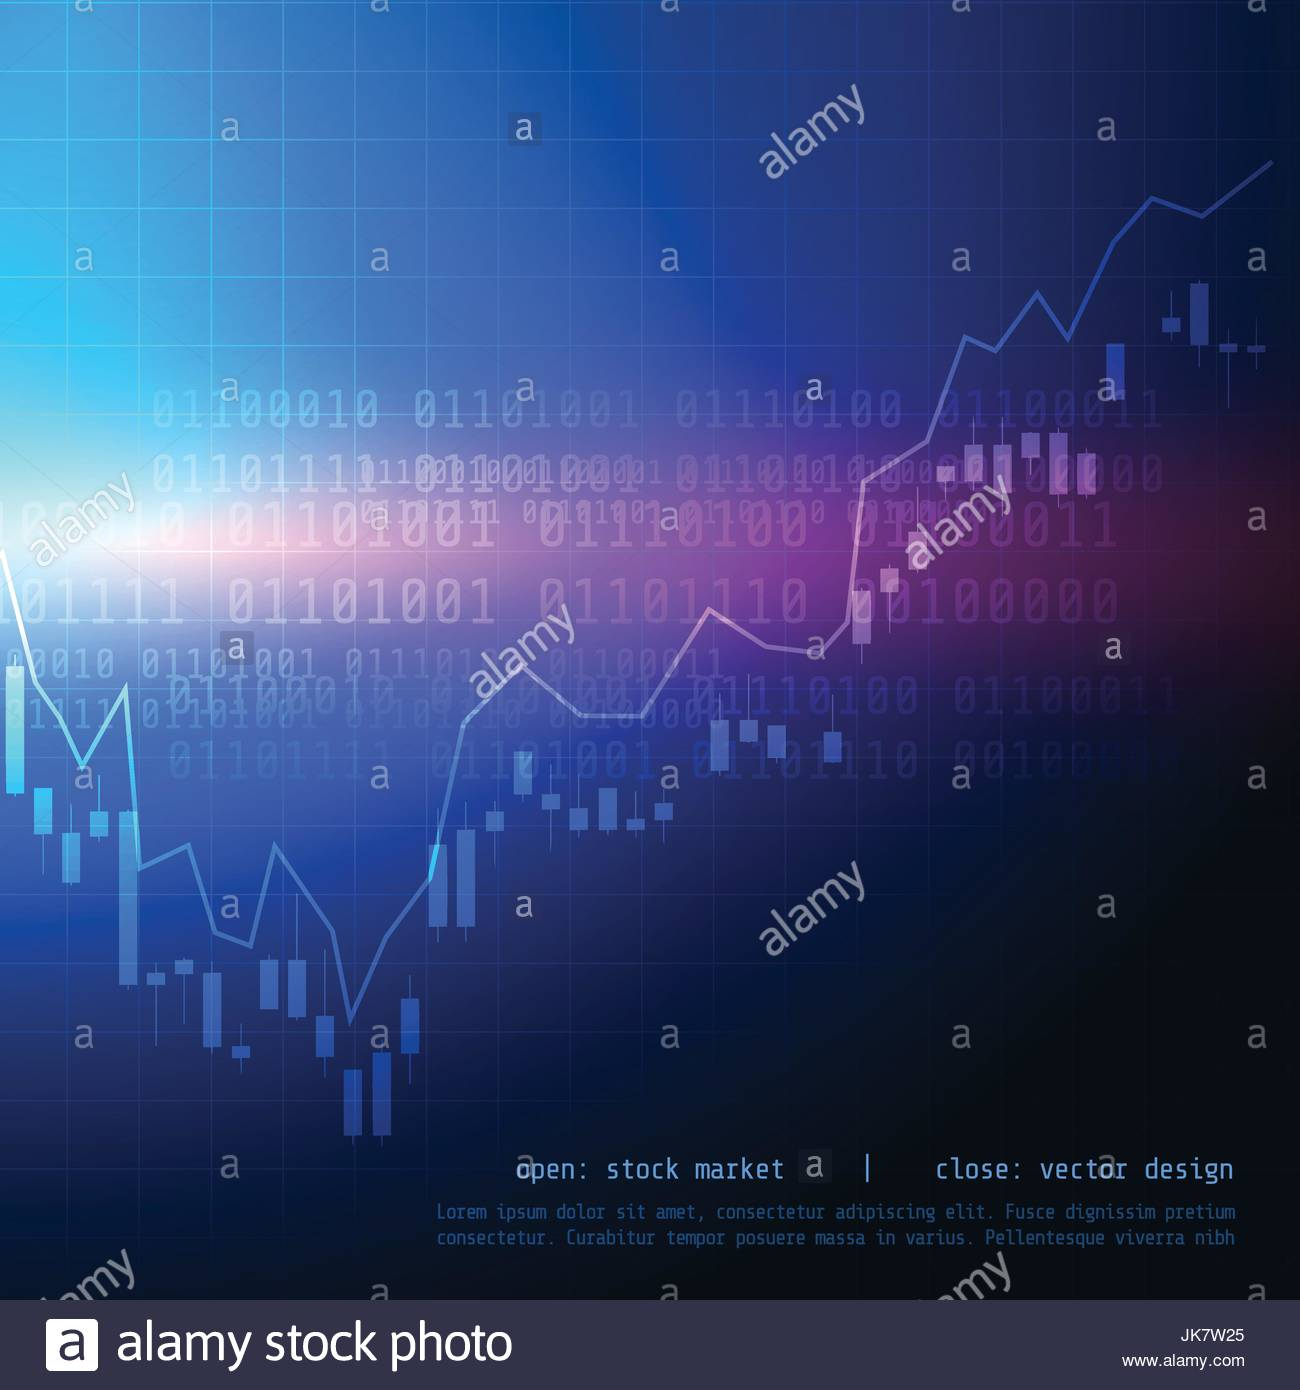 candle stick stock market trading chart with bullish high and bearish low point - Stock Vector